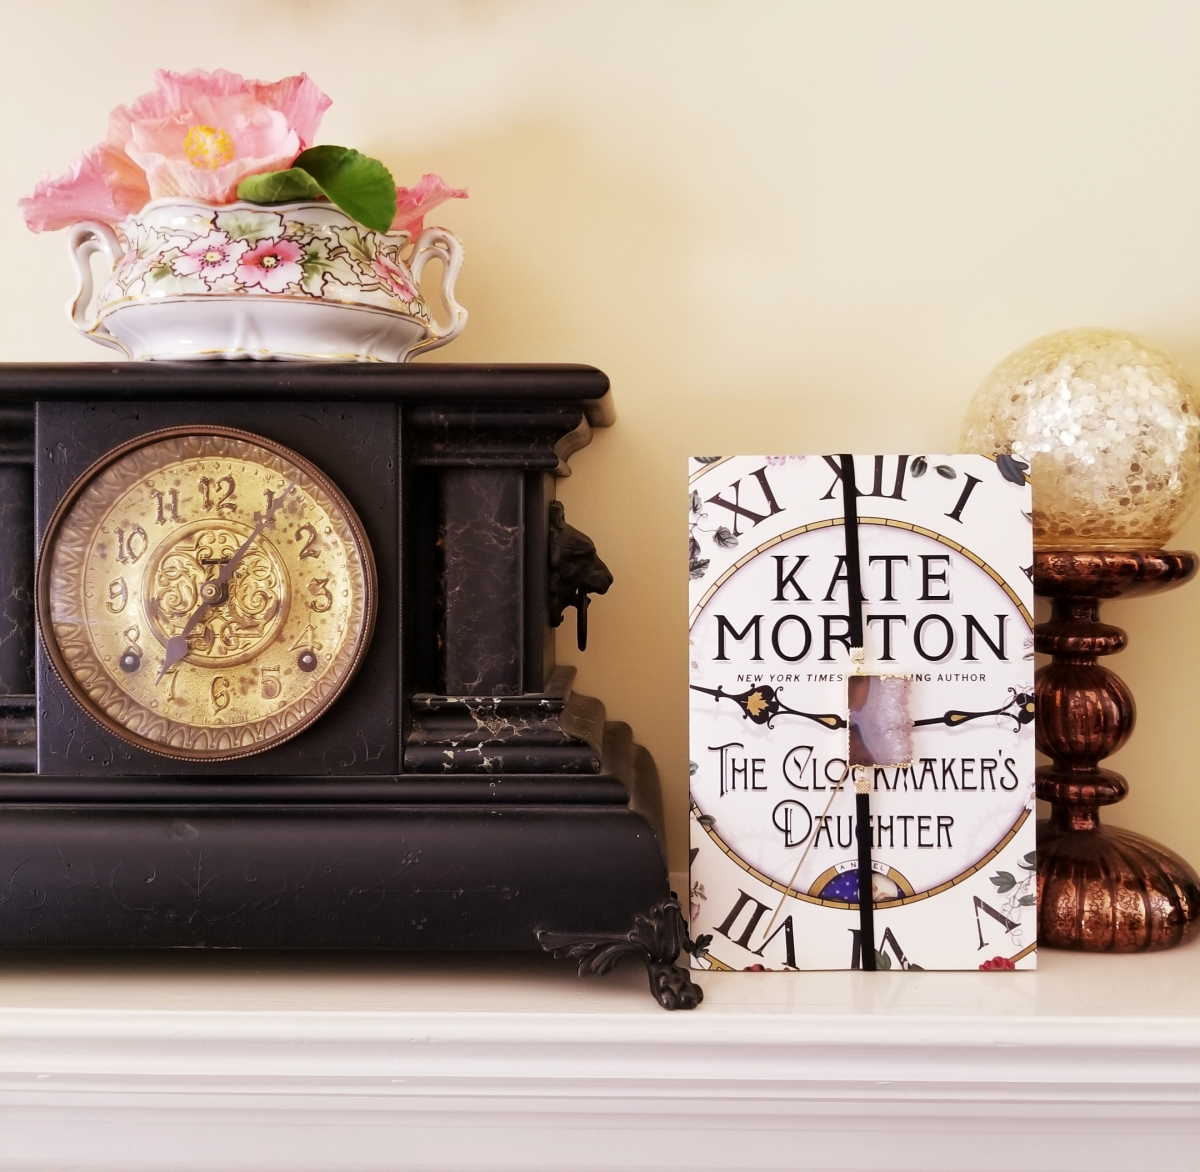 The Clockmaker's Daughter by Kate Morton #bookreview #tarheelreader #thrclockmaker #katemorton @atriabooks #theclockmakersdaughter #6bookbestiesclockmakersdaughter #6bookbestiesapproved